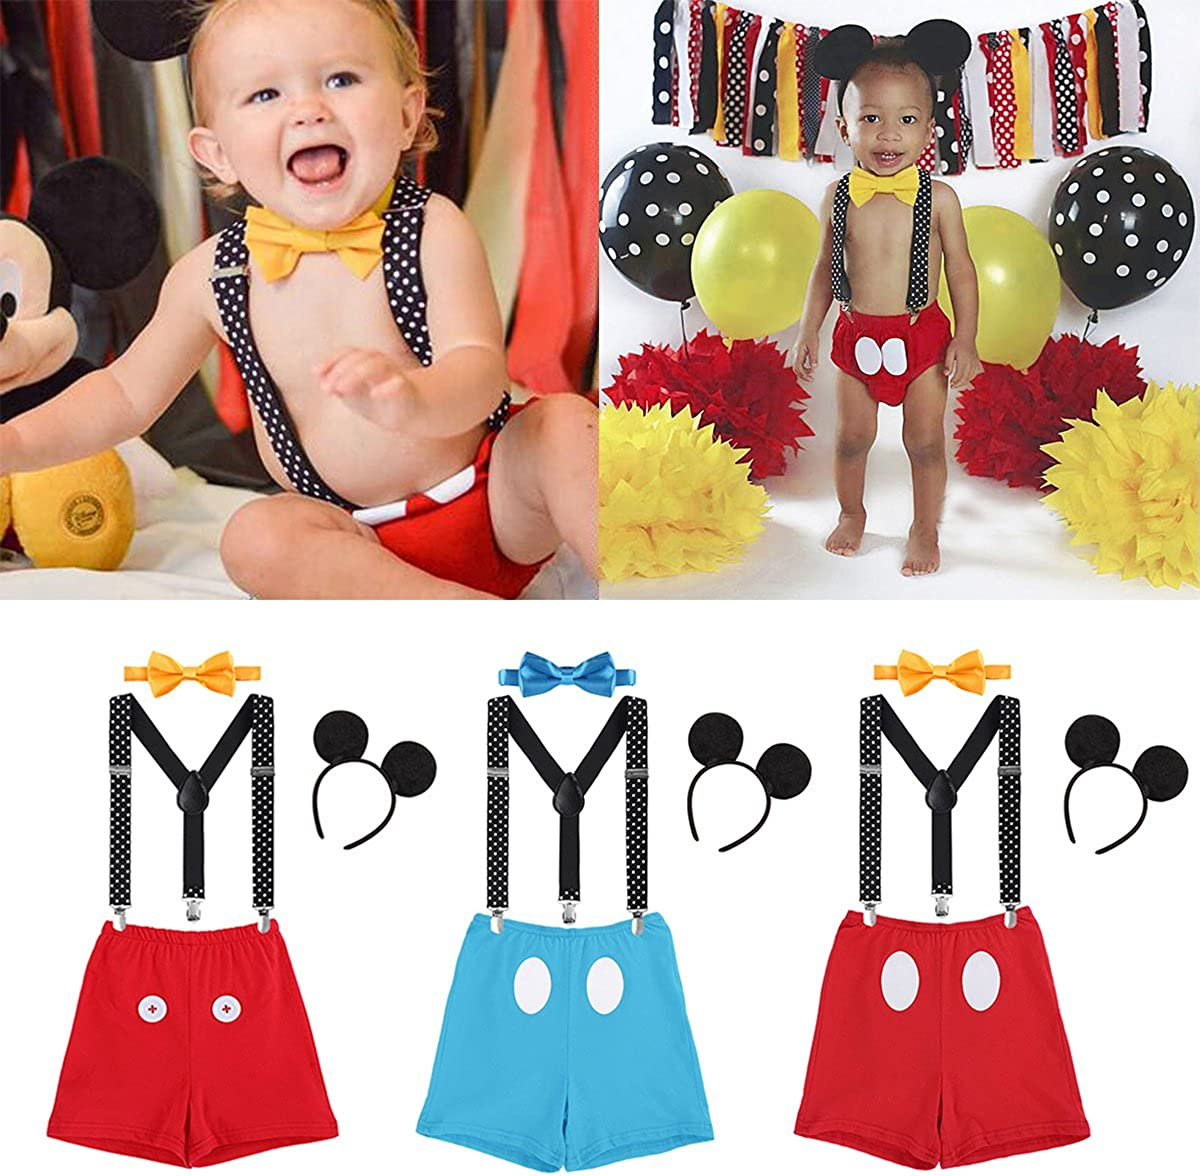 Cake Smash Outfit Baby Boy First Birthday Party Bottoms Bowtie Y-Back Suspenders Photography Props 3pcs Clothes Set